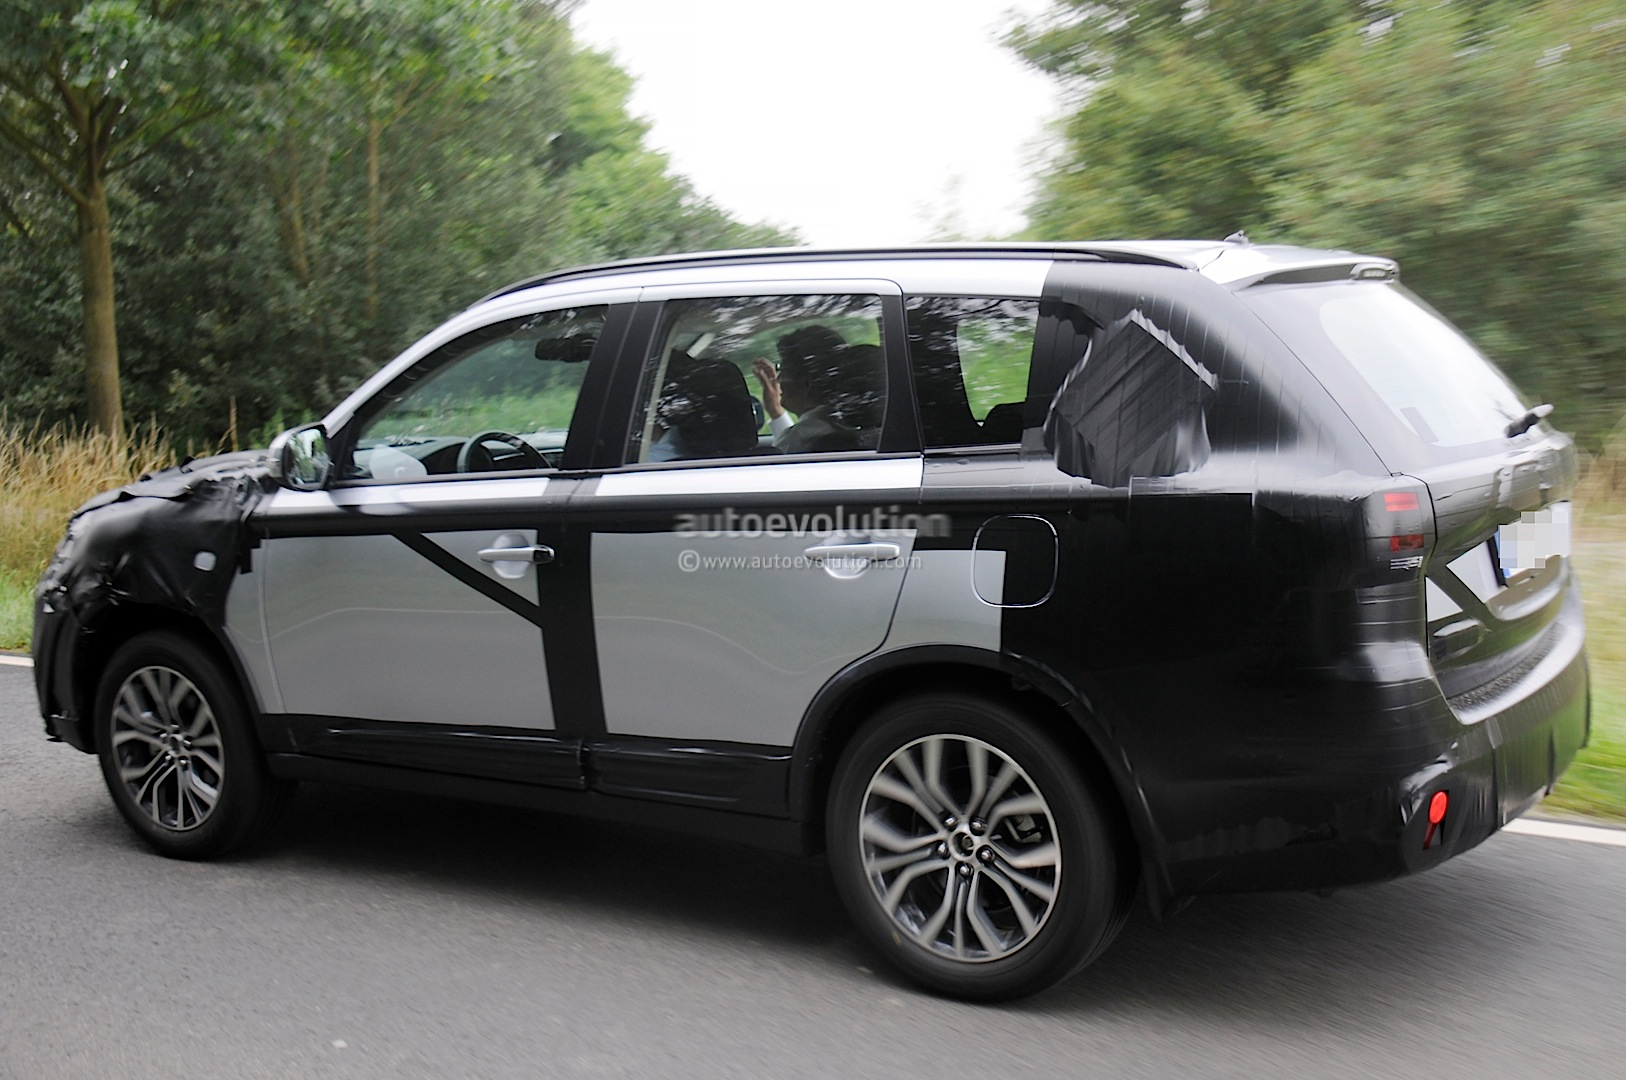 2015 Mitsubishi Outlander Spied Again, This Time in Europe